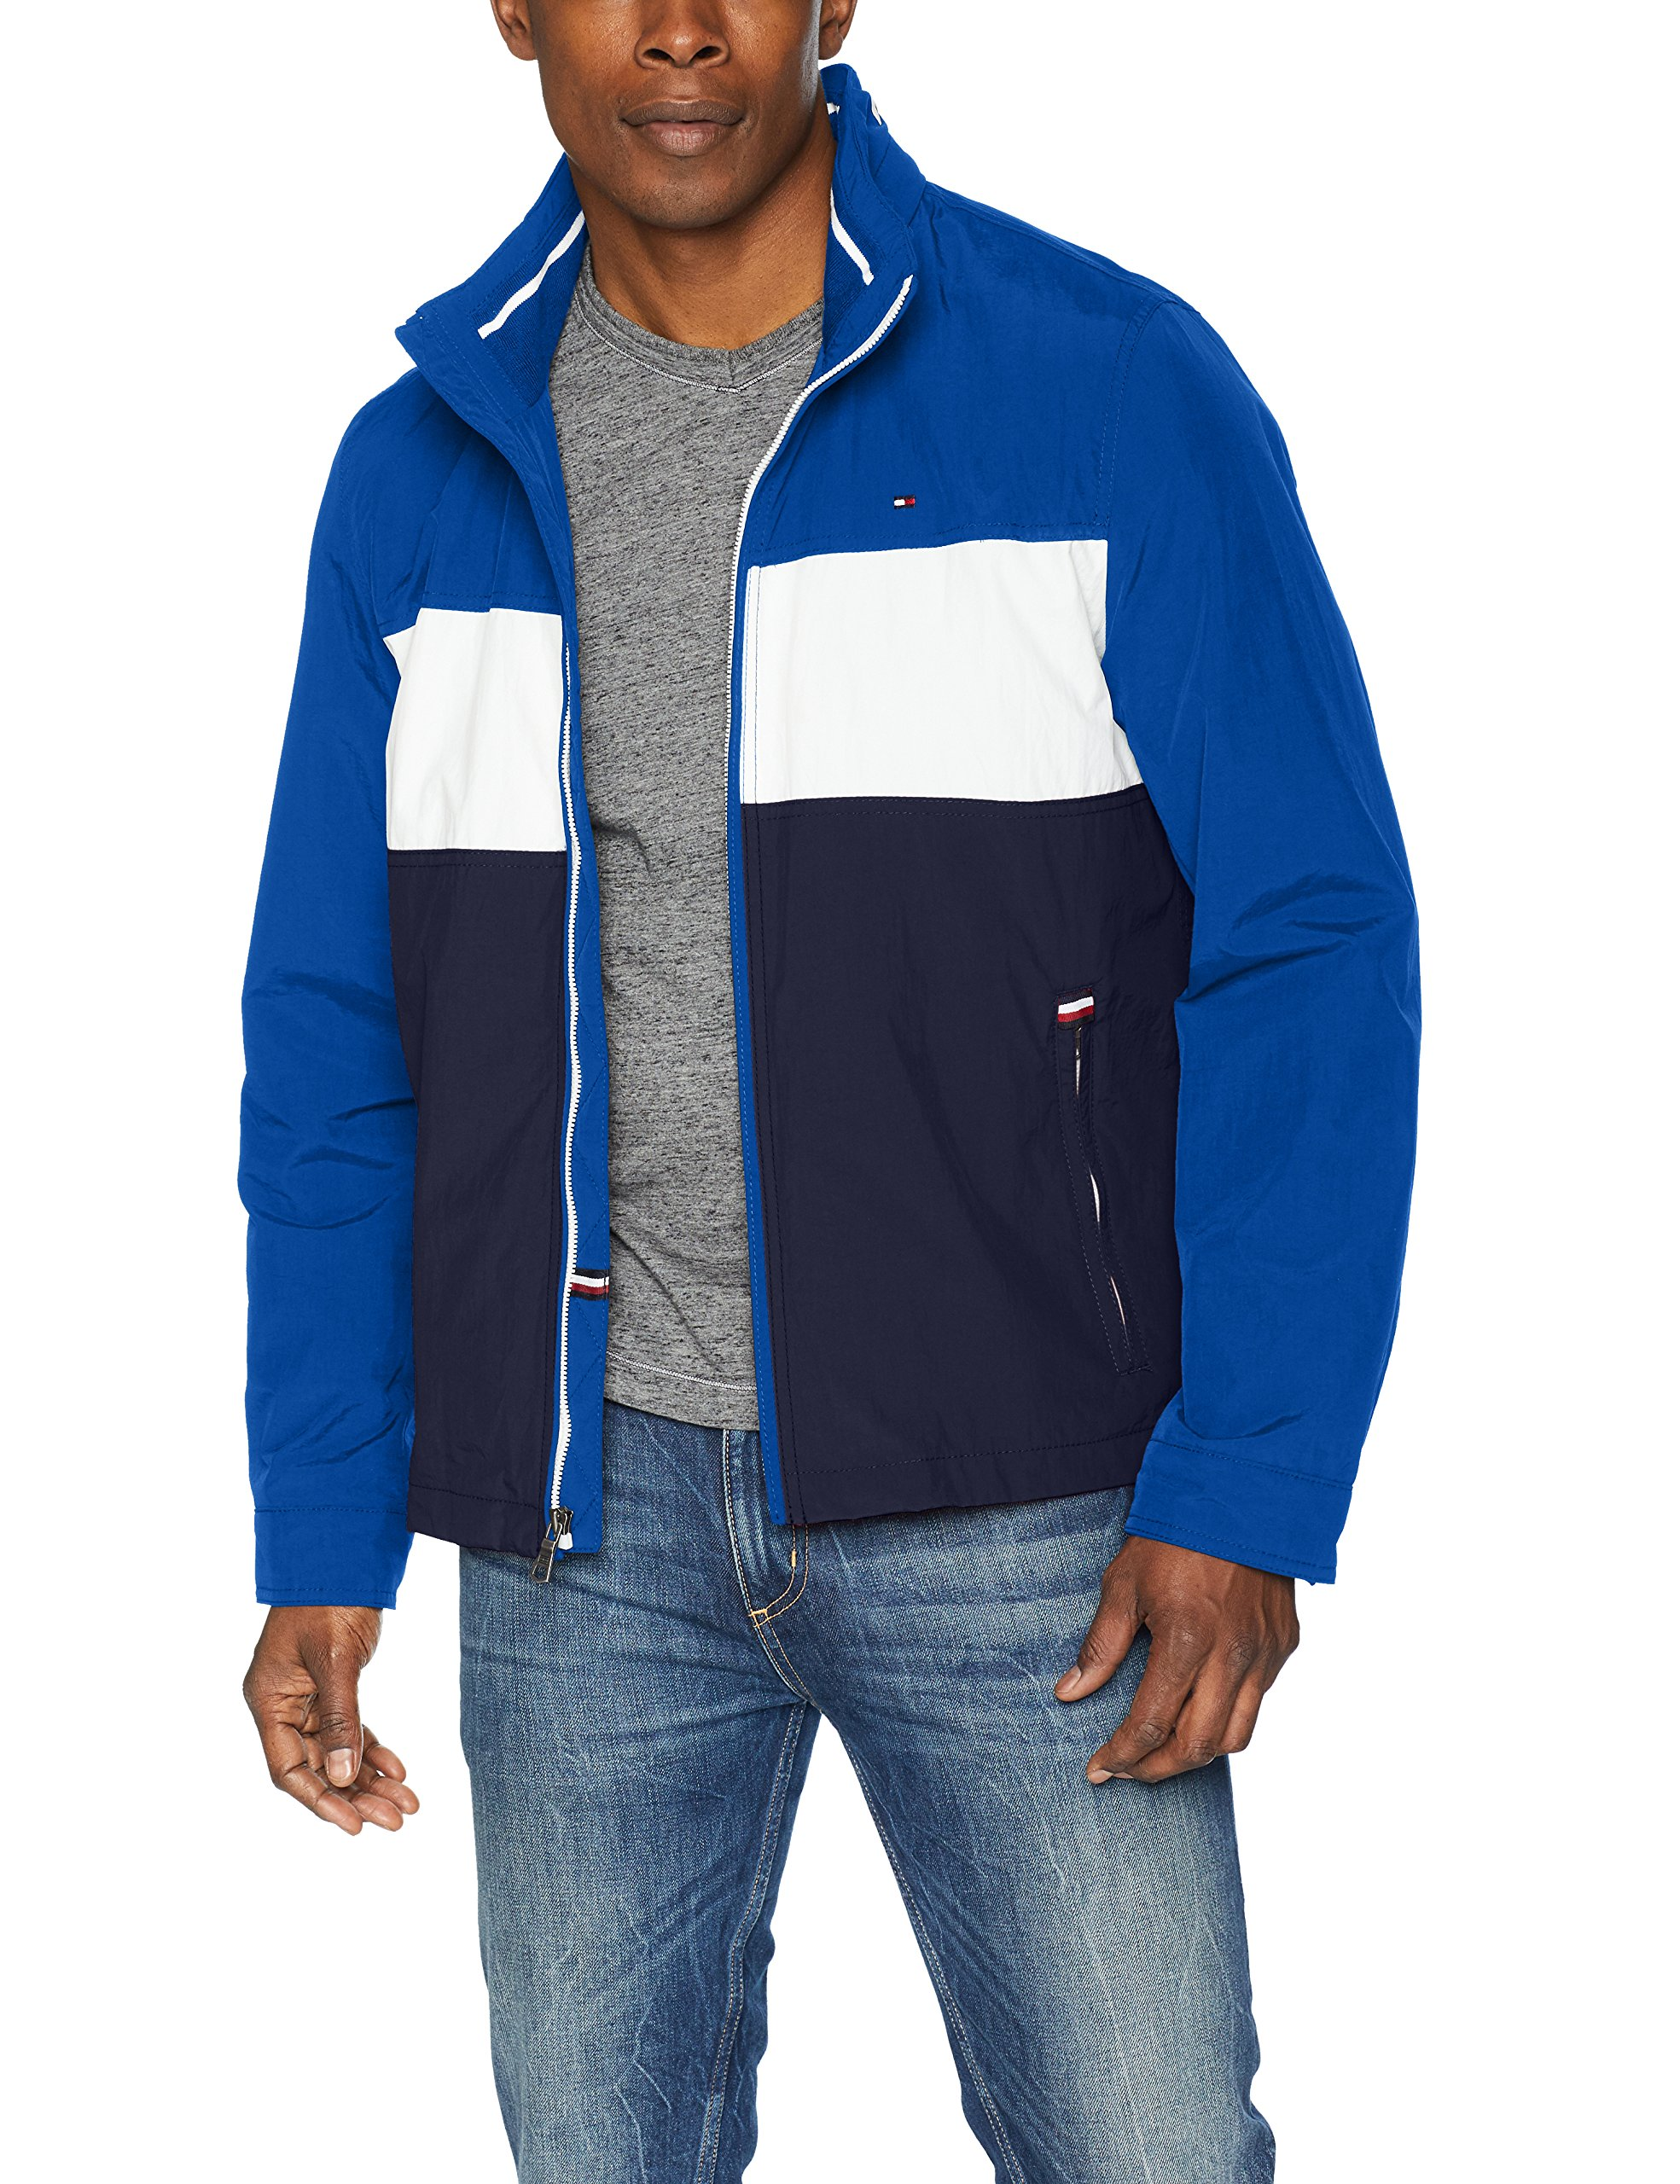 Tommy Hilfiger Men's Stand Collar Lightweight Yachting Jacket, Royal Blue/Ice/Navy, Medium by Tommy Hilfiger